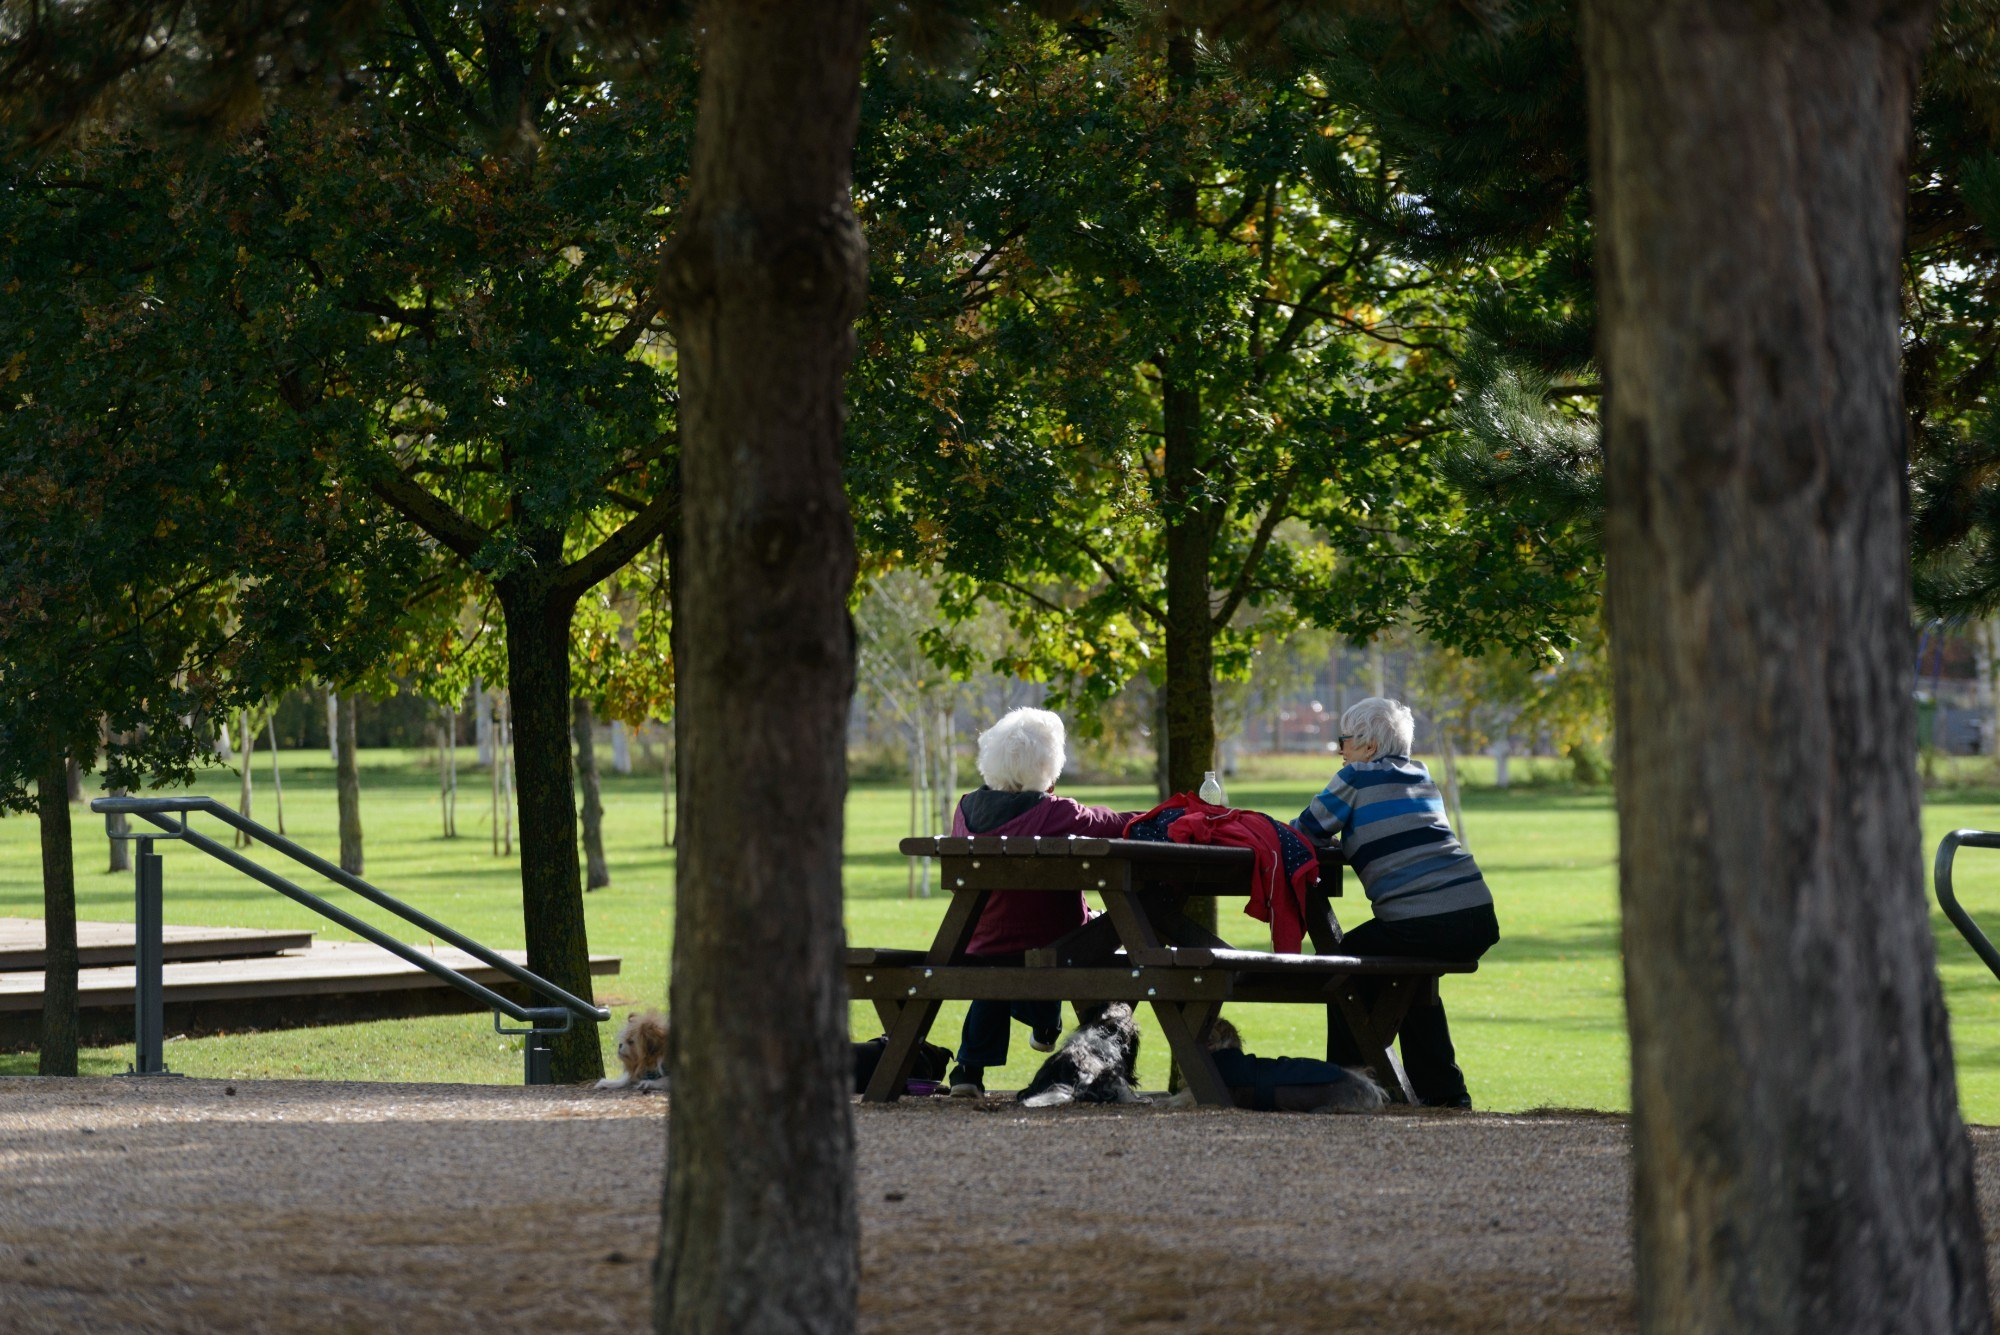 A couple in Thames Barrier Park